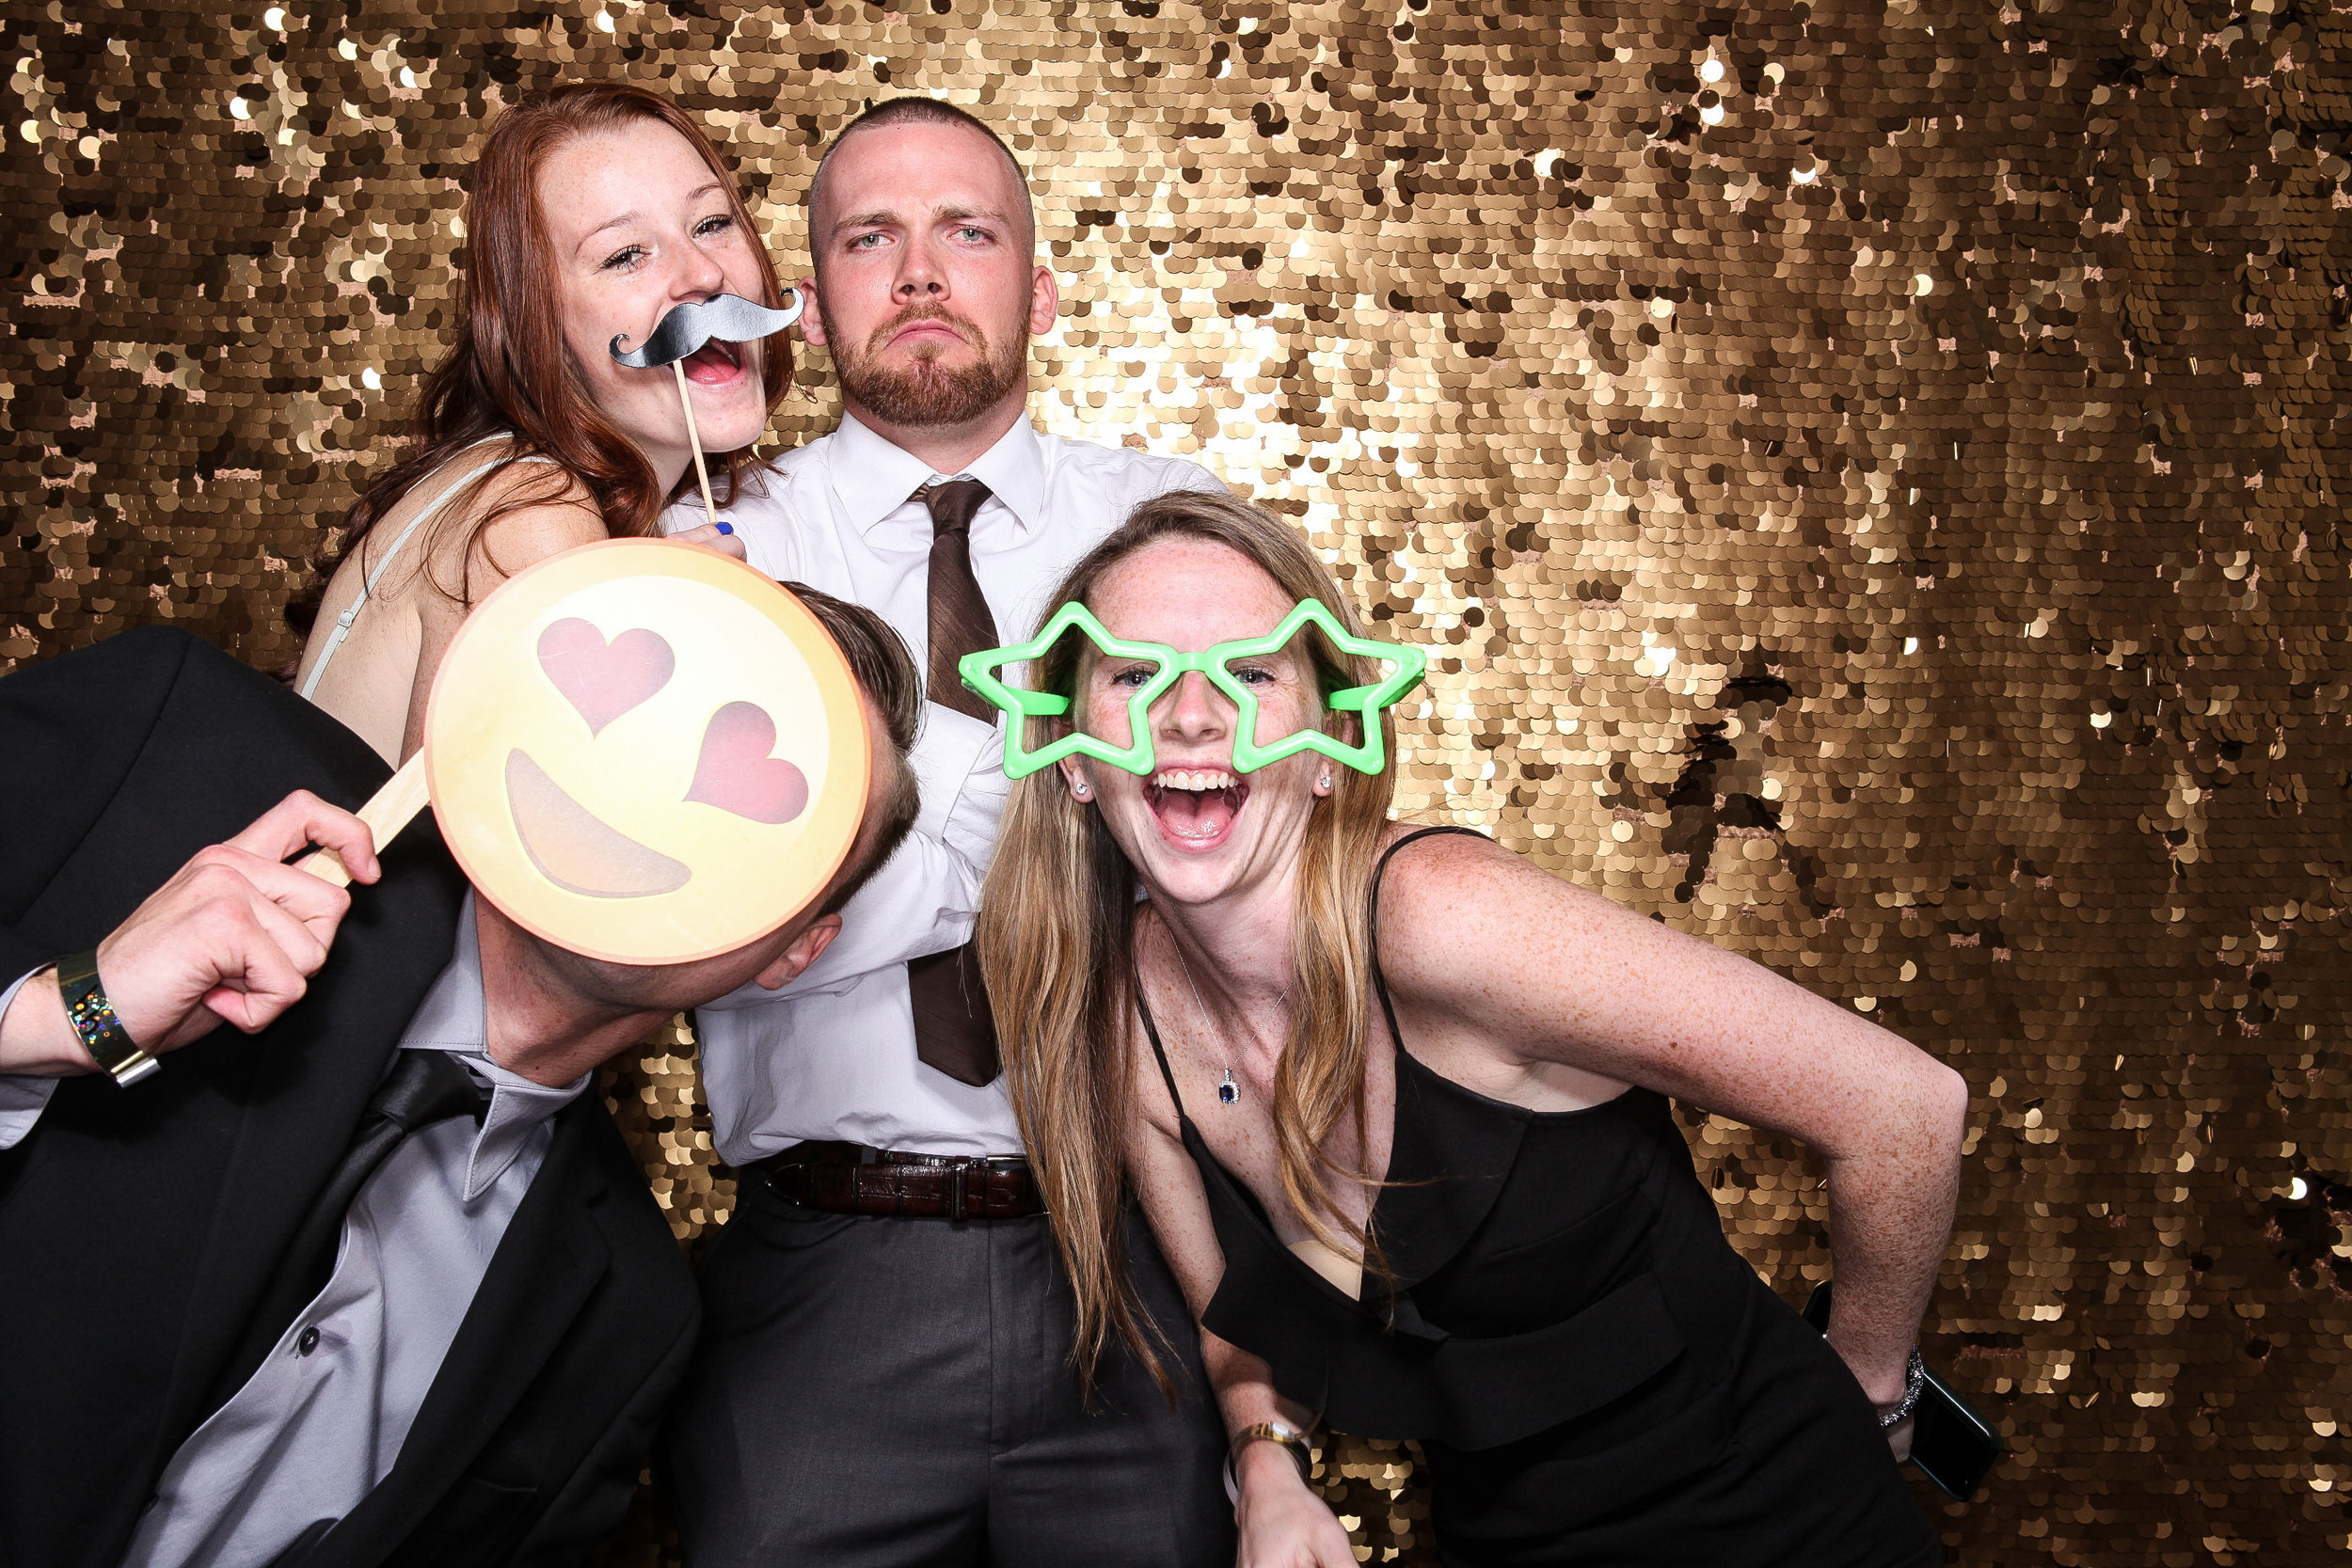 20190503_Adelphi_Senior_Formal-232.jpg